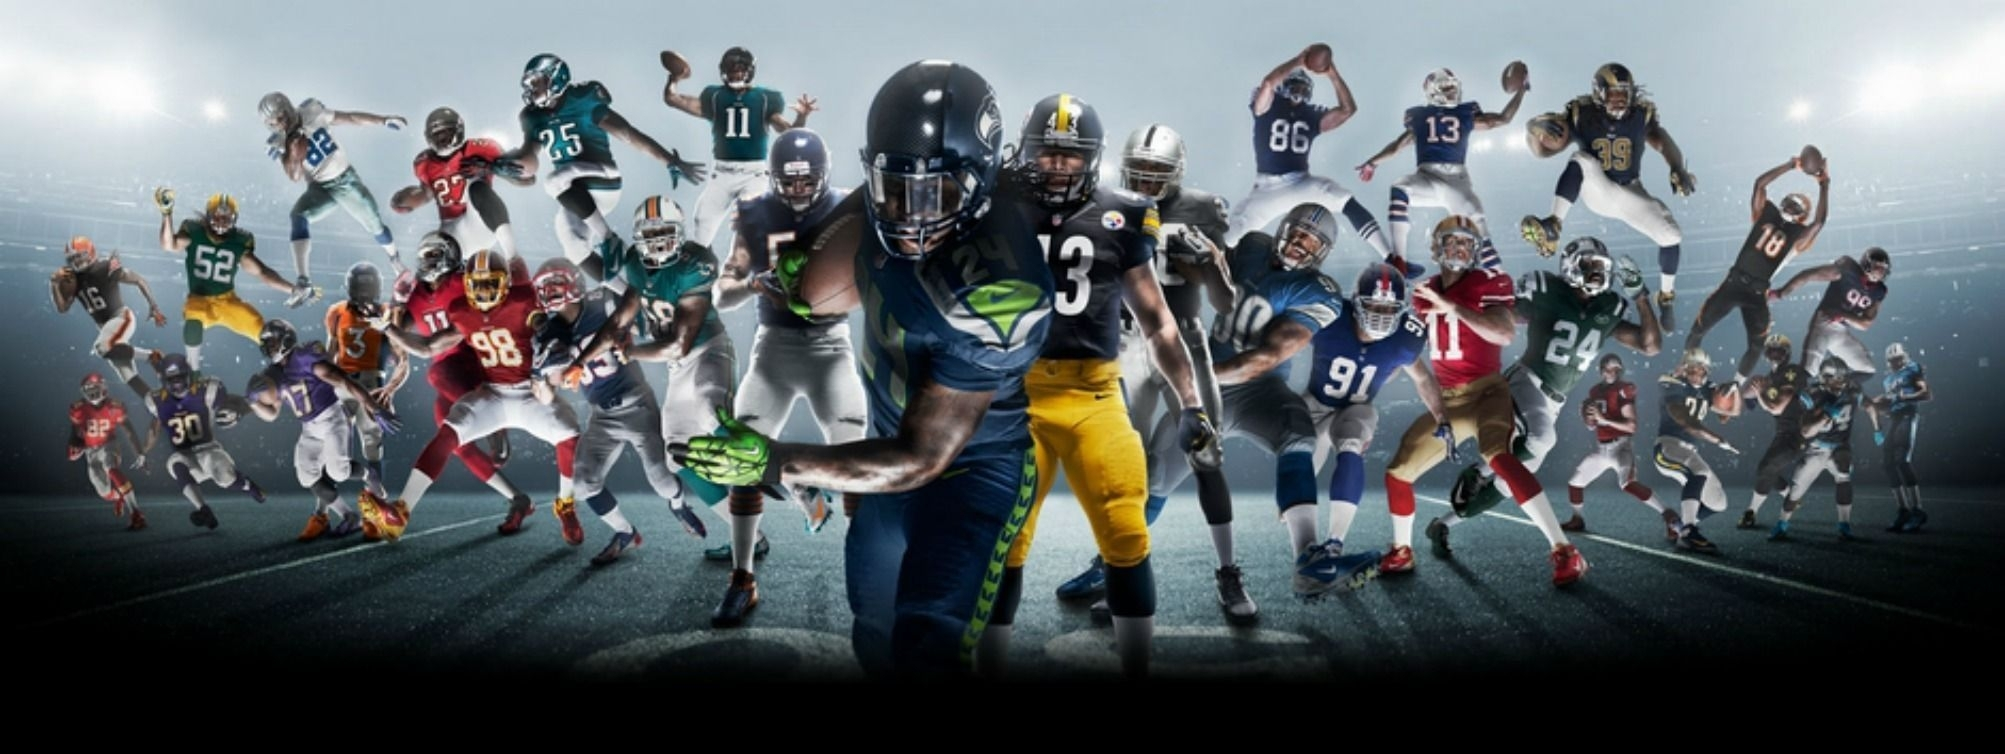 cool american football backgrounds group (66+)